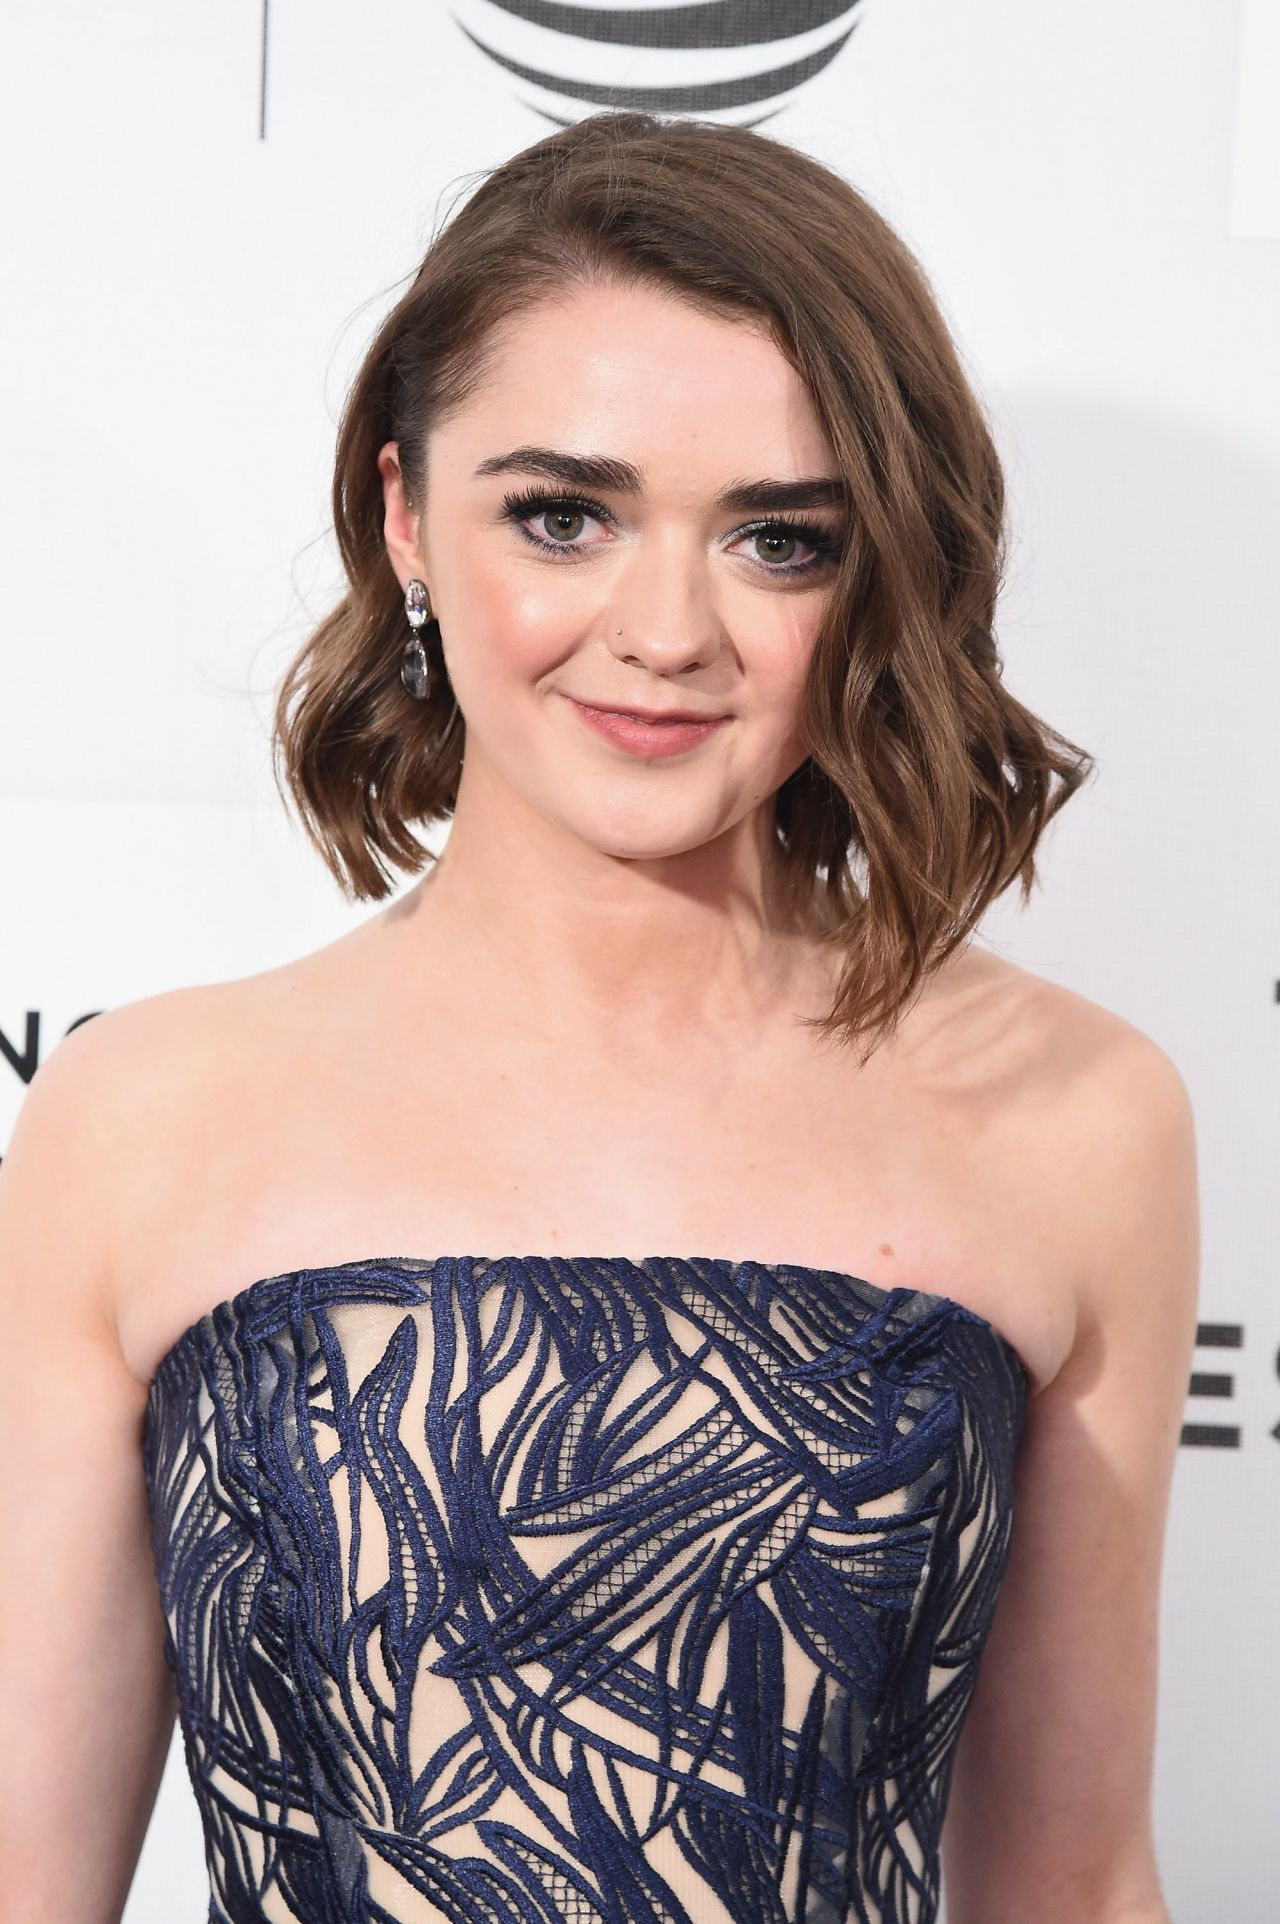 maisie williams - photo #6